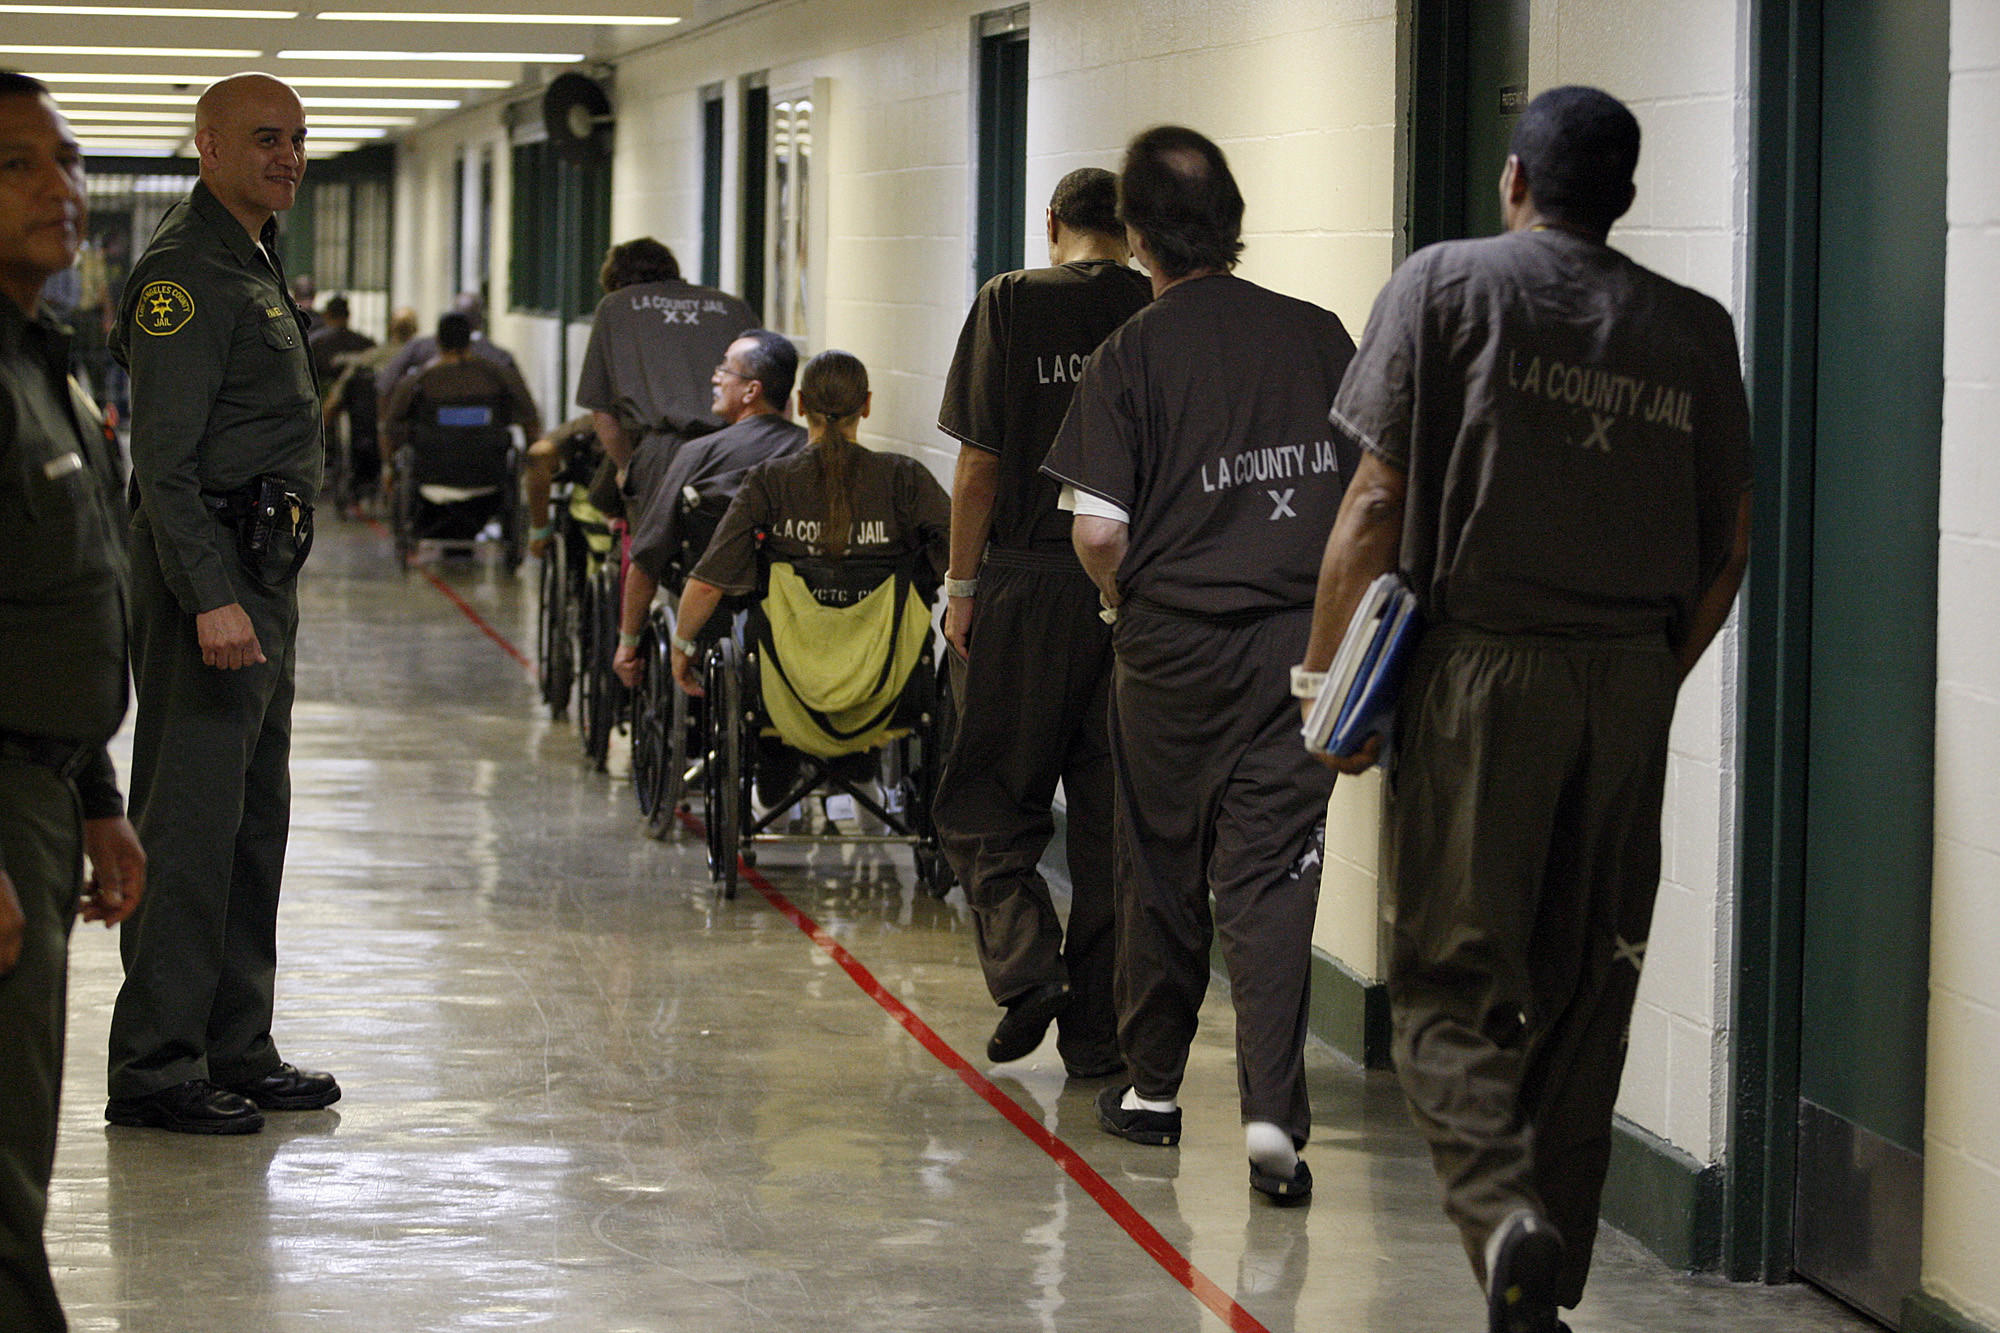 The L.A. County Board of Supervisors next month will hear and decide on proposals to replace and improve conditions at county jails.